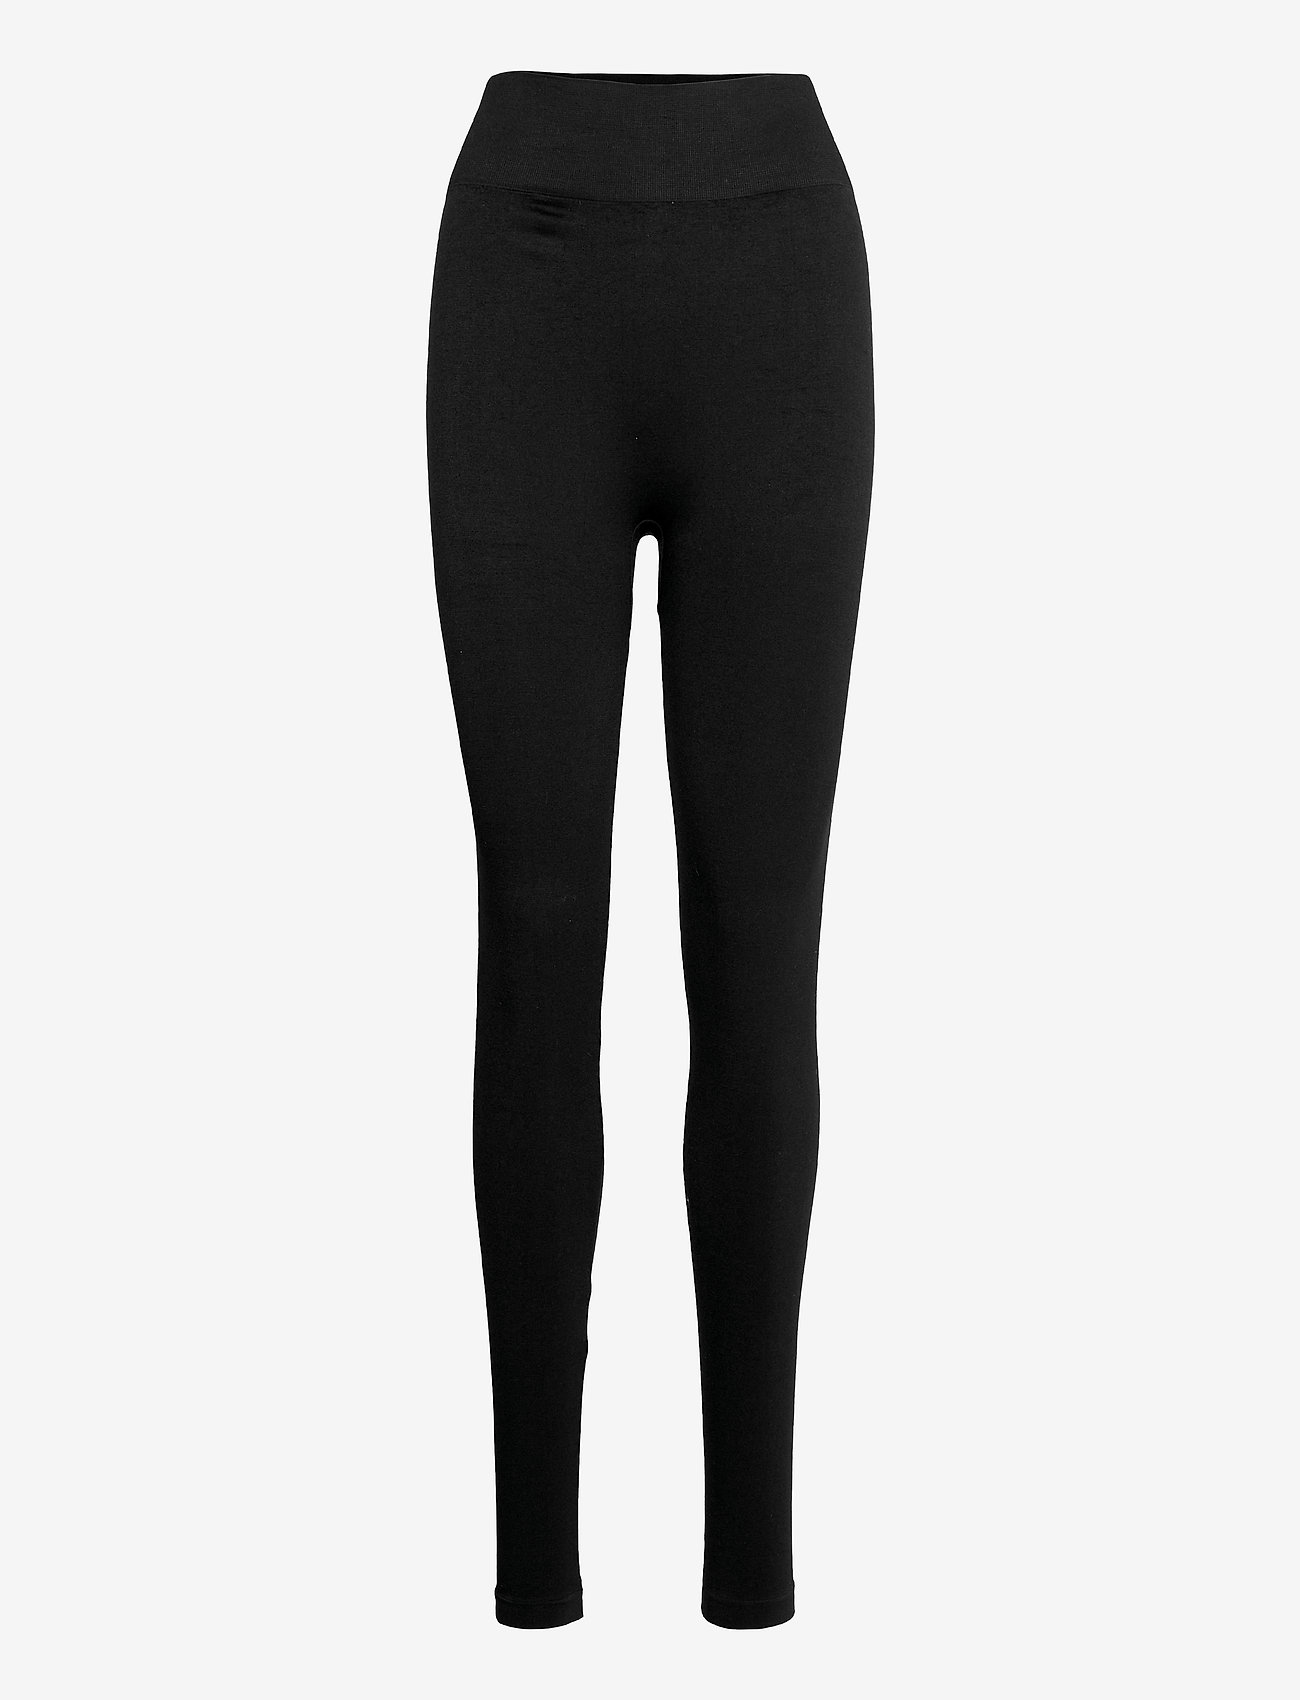 b.young - BYBRIX LEG - Leggings w. rib - leggings - black - 0